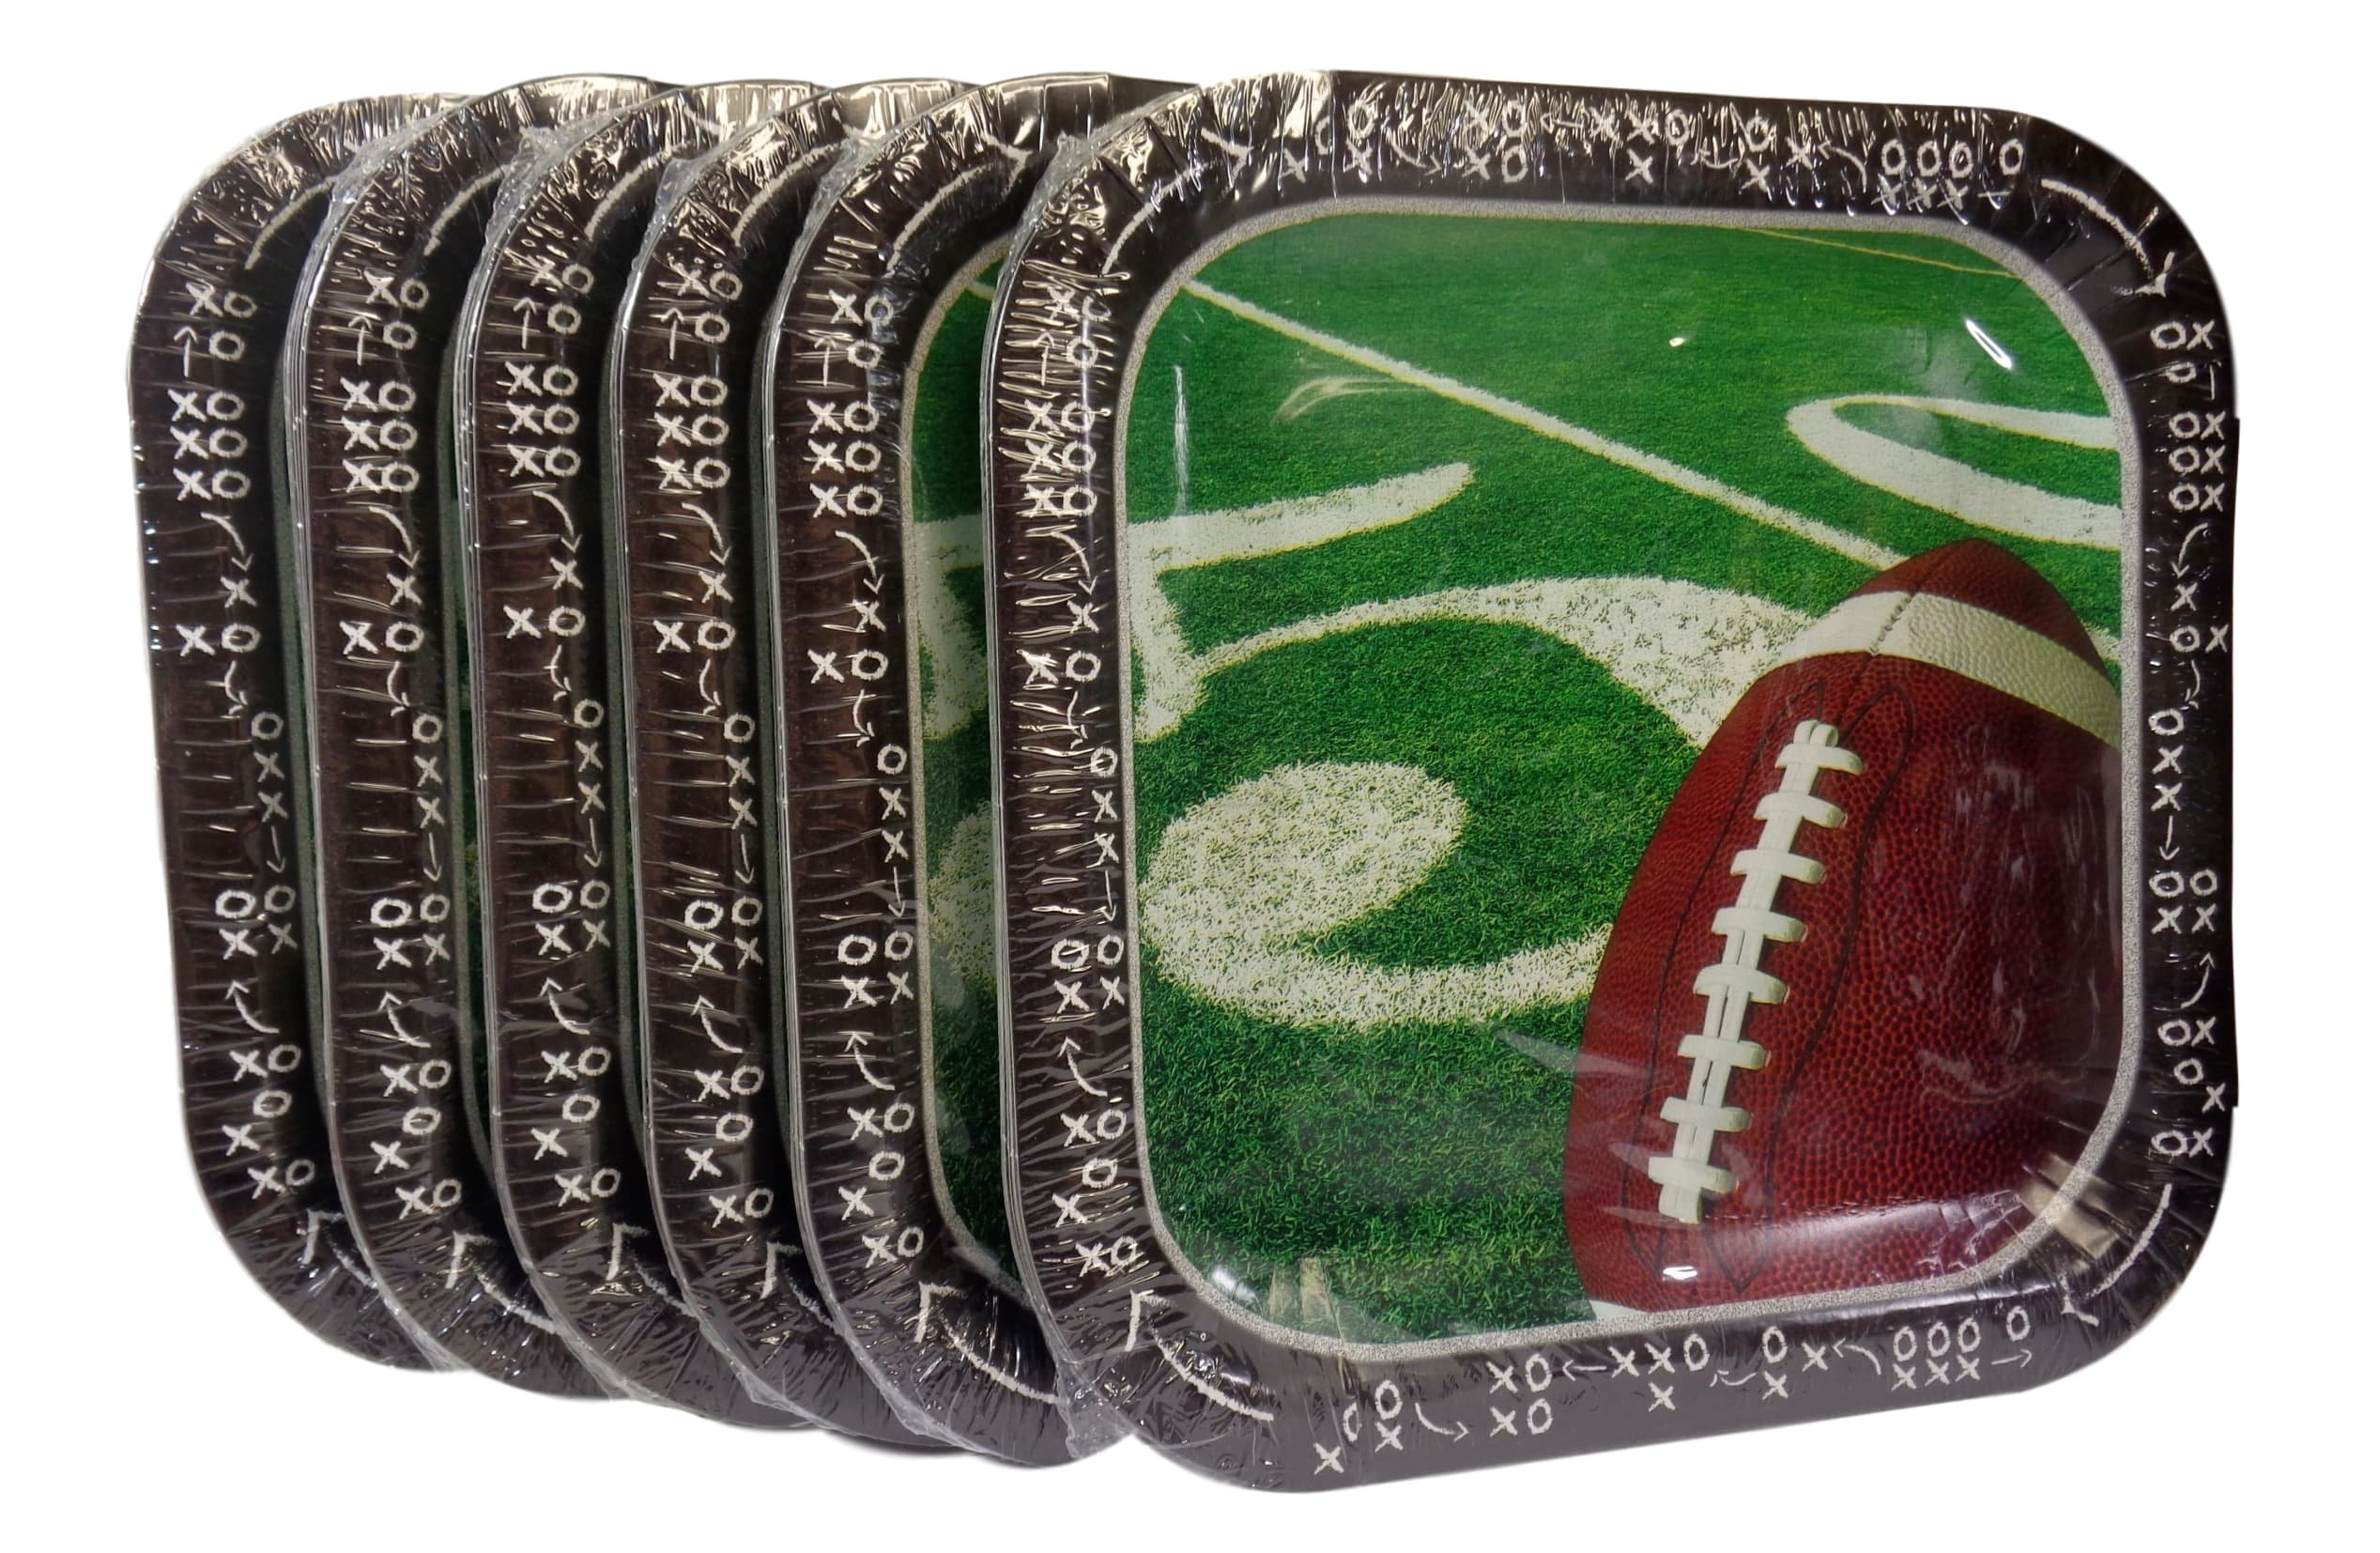 Bulk Buy: Football Super Bowl Party Square Paper Plates, (14) Plates/Pkg., Pack of (6) - Total (84) Plates by Greenbrier International